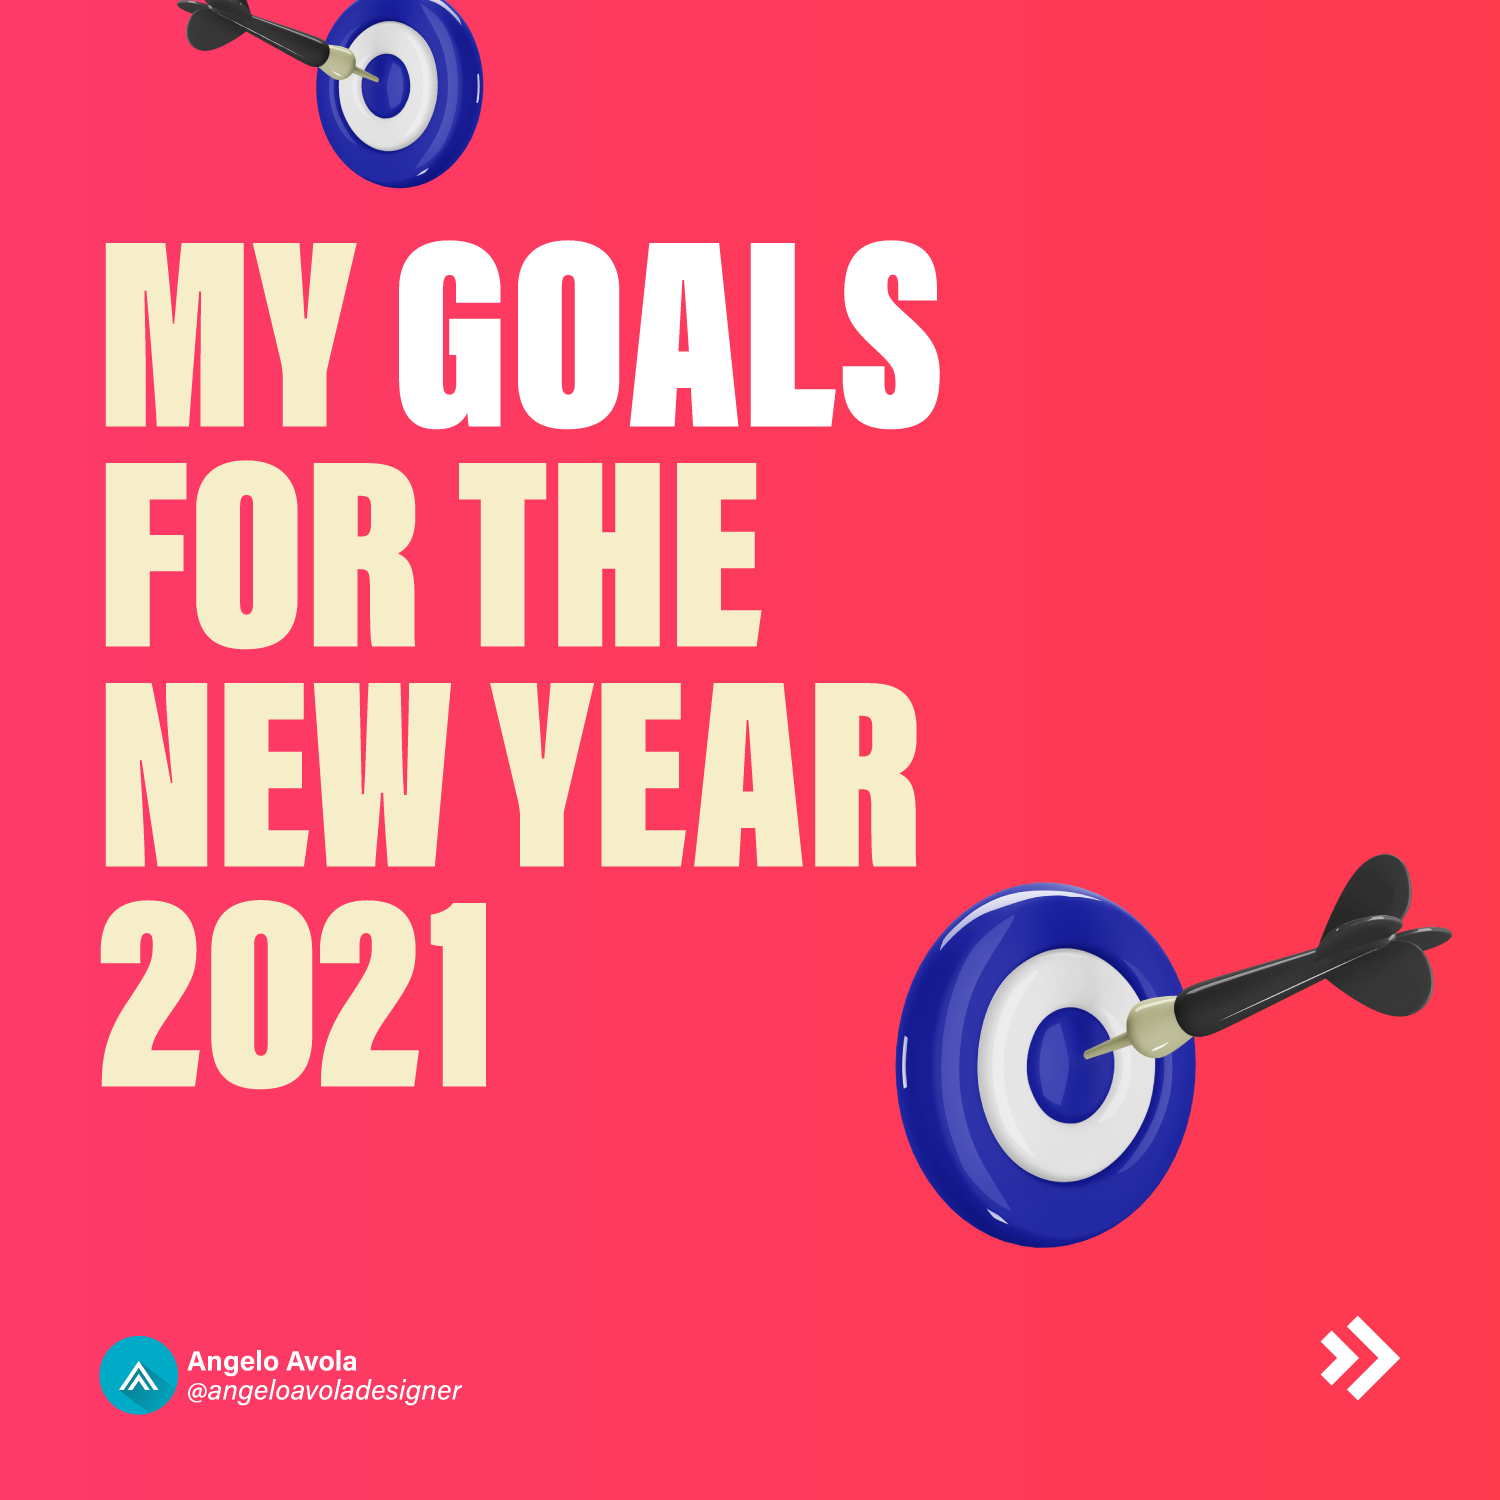 My goals for the new year 2021